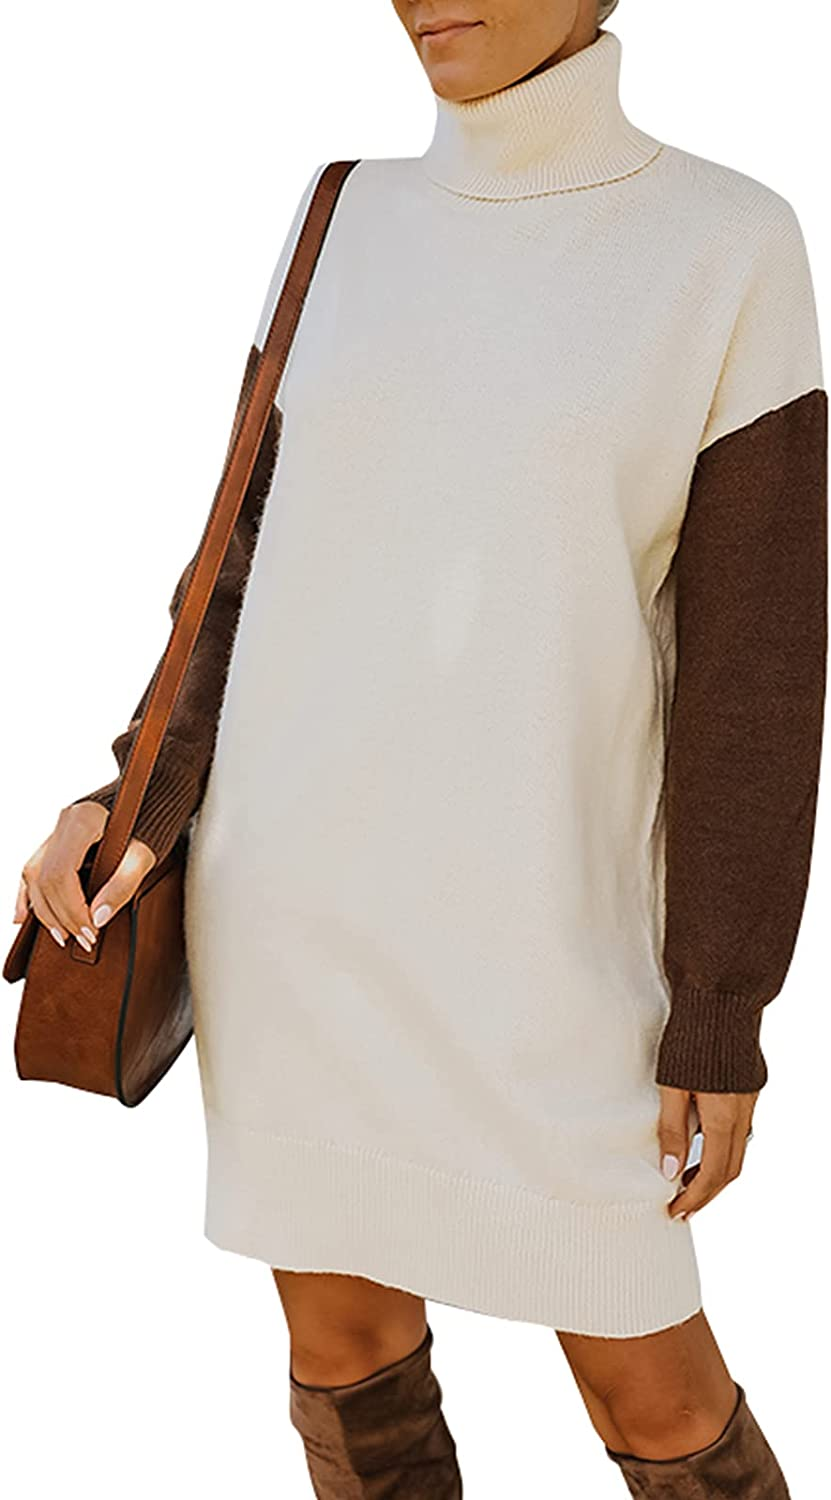 NALANISA Turtleneck Long Sleeve Midi Sweater Dress Casual Loose Oversized Ribbed Knit Color Block Pullover Sweater Tops